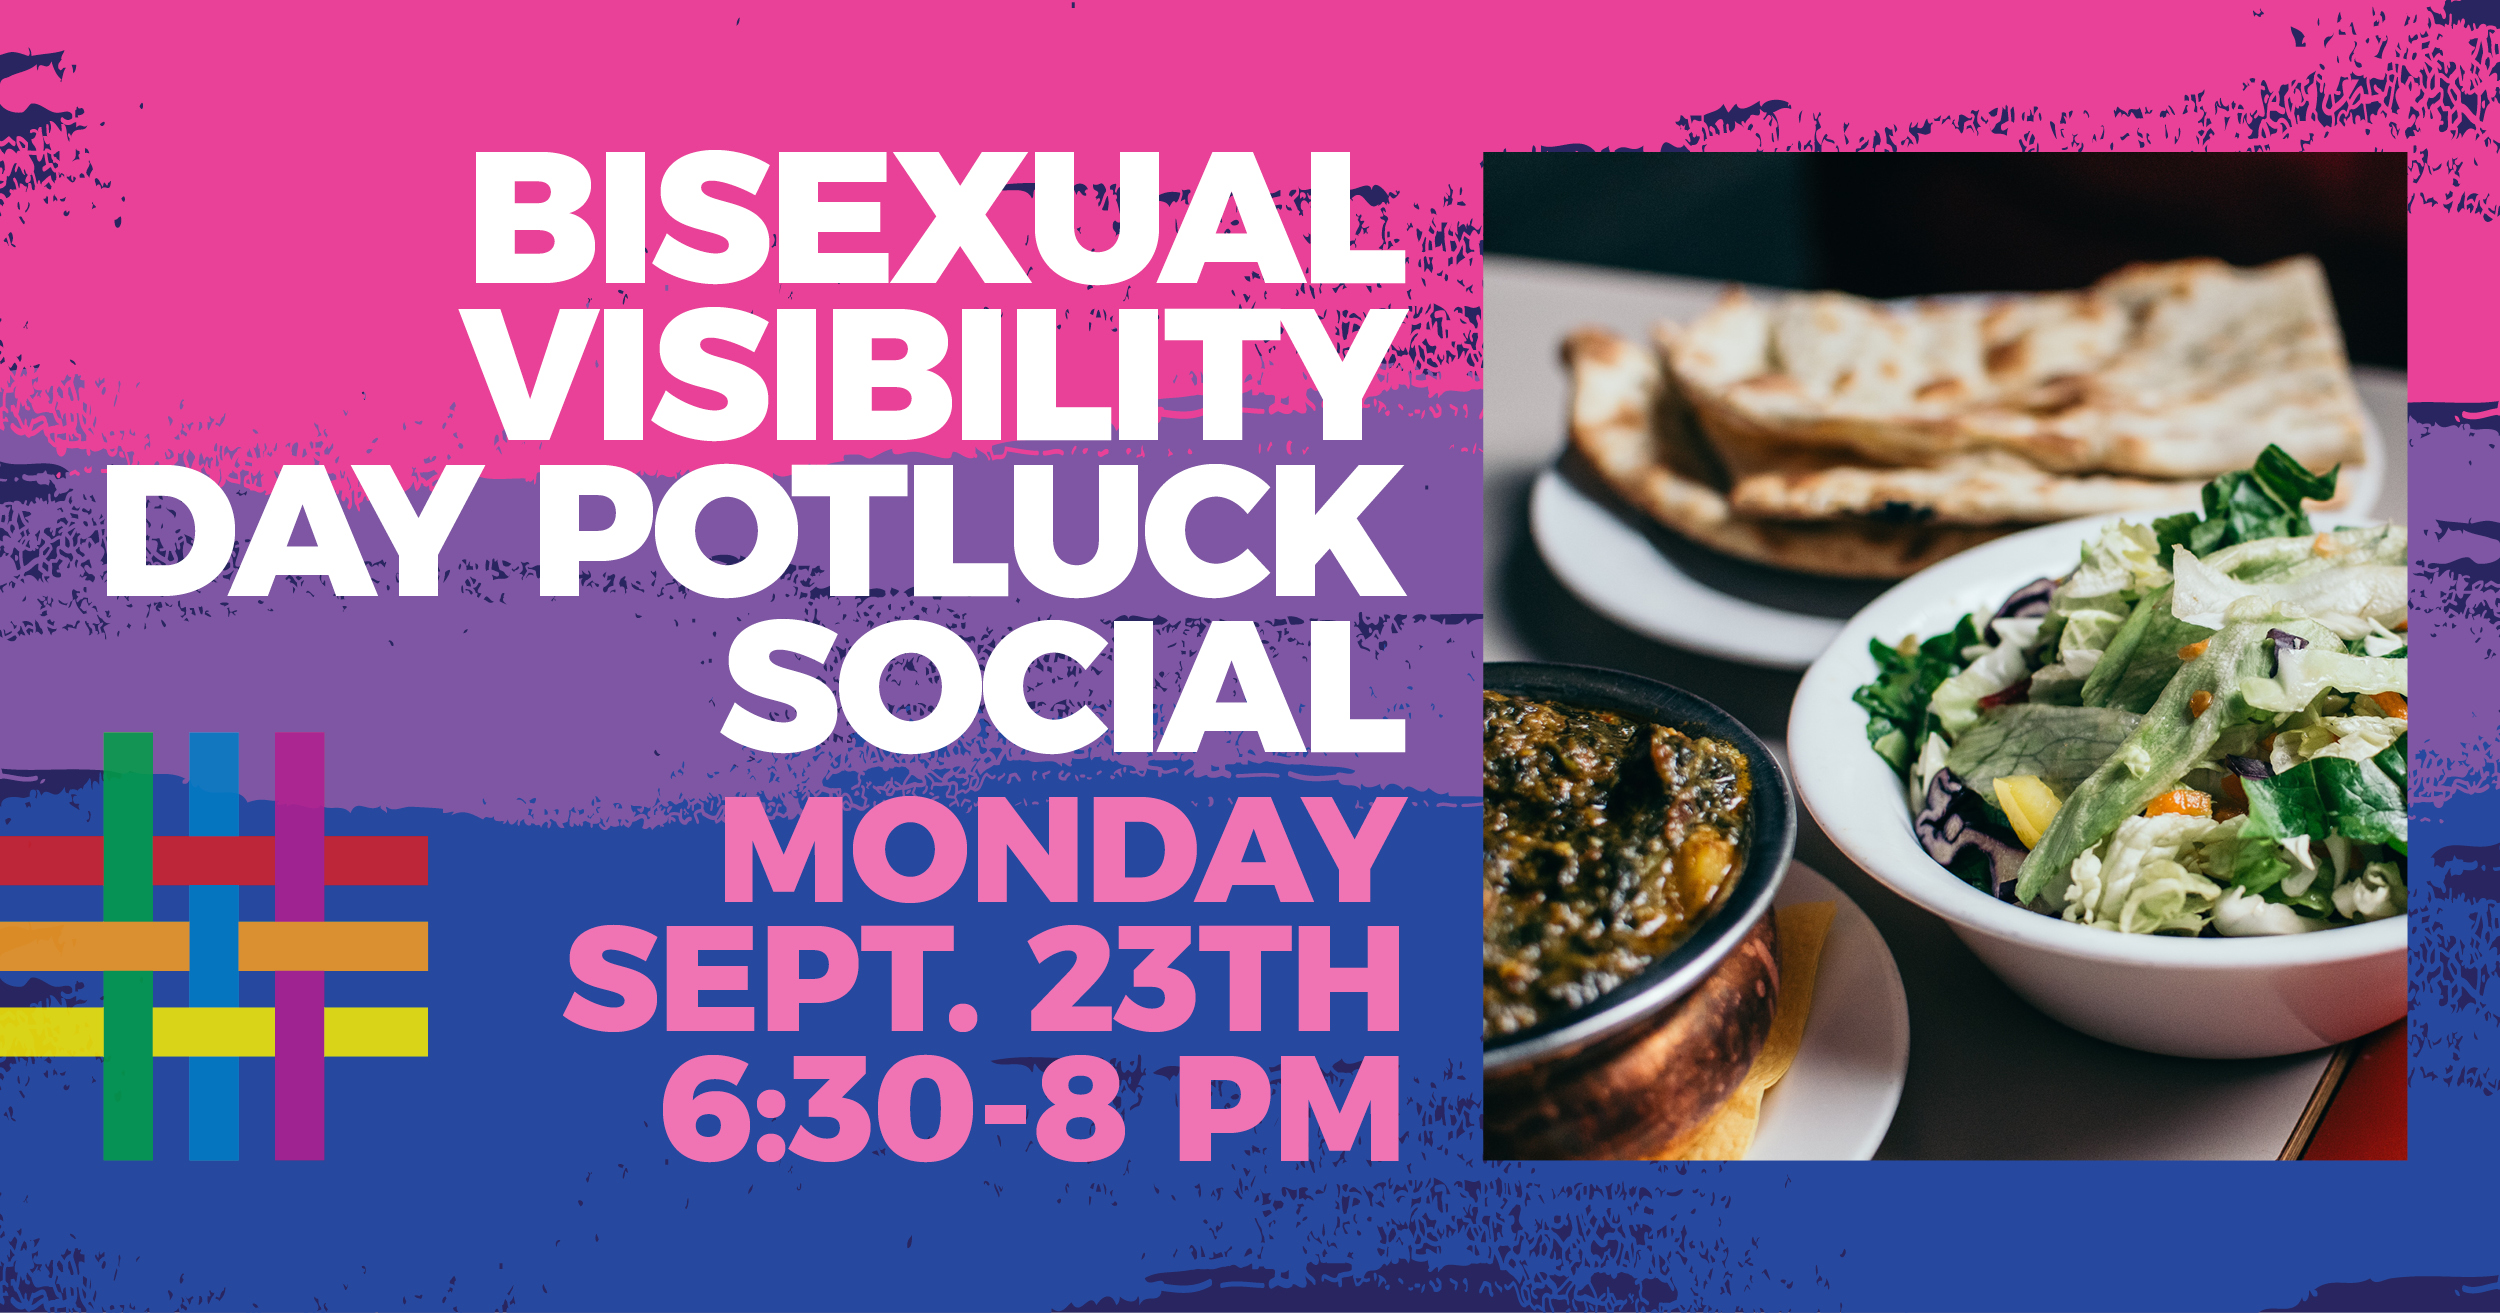 Bisexual Visibility Day: Potluck Social at Brooklyn Community Pride Center